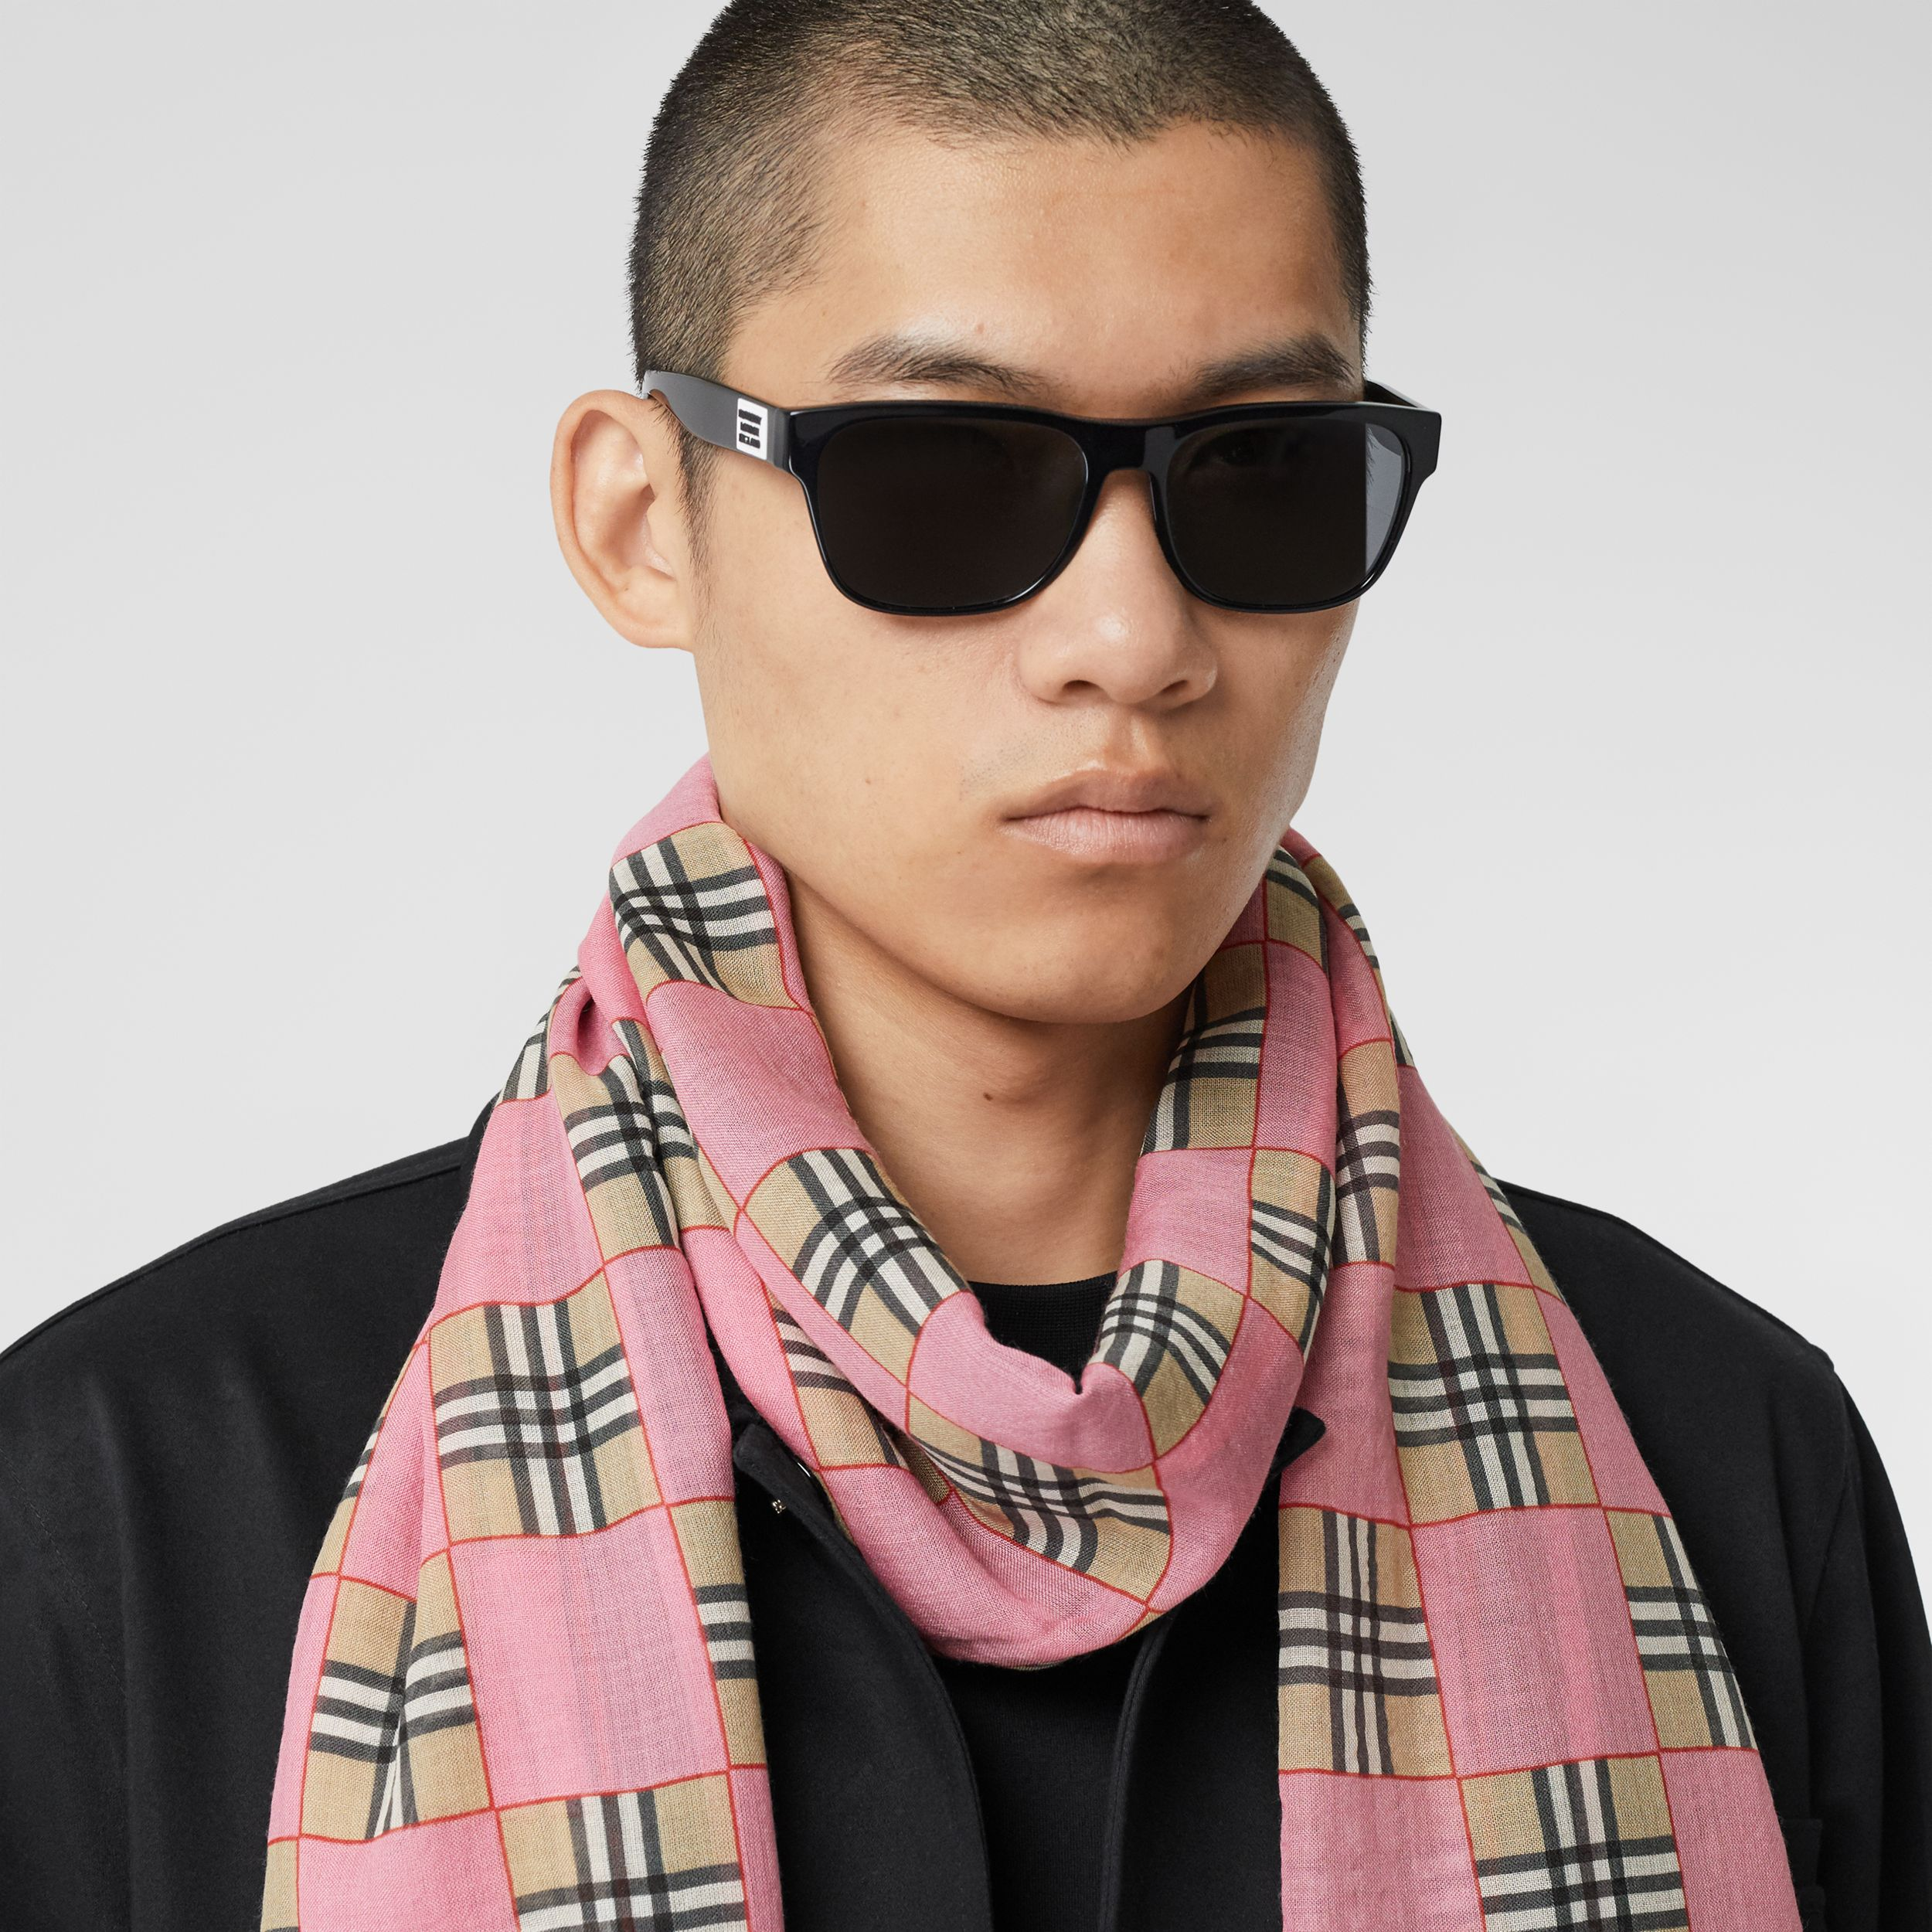 Chequer Print Wool Silk Scarf in Pink | Burberry - 4